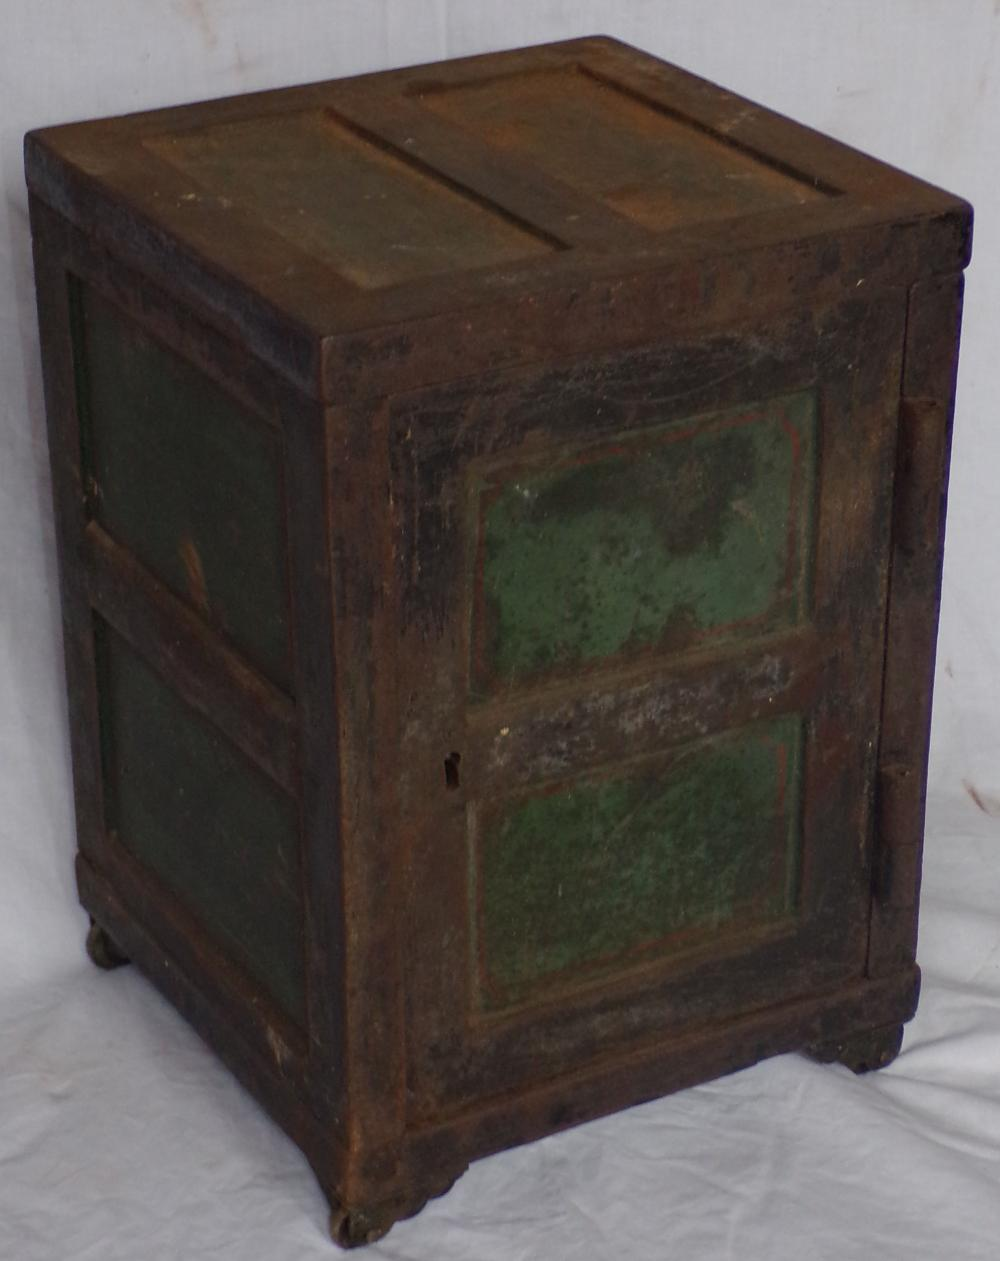 "Antique miniature cast iron safe, case with remnants of old green paint & red striping ending on casters, wooden interior with pigeon holes, key lock, No Key, 13 1/8"" T x 9 1/8"" W x 8 7/8"" D"